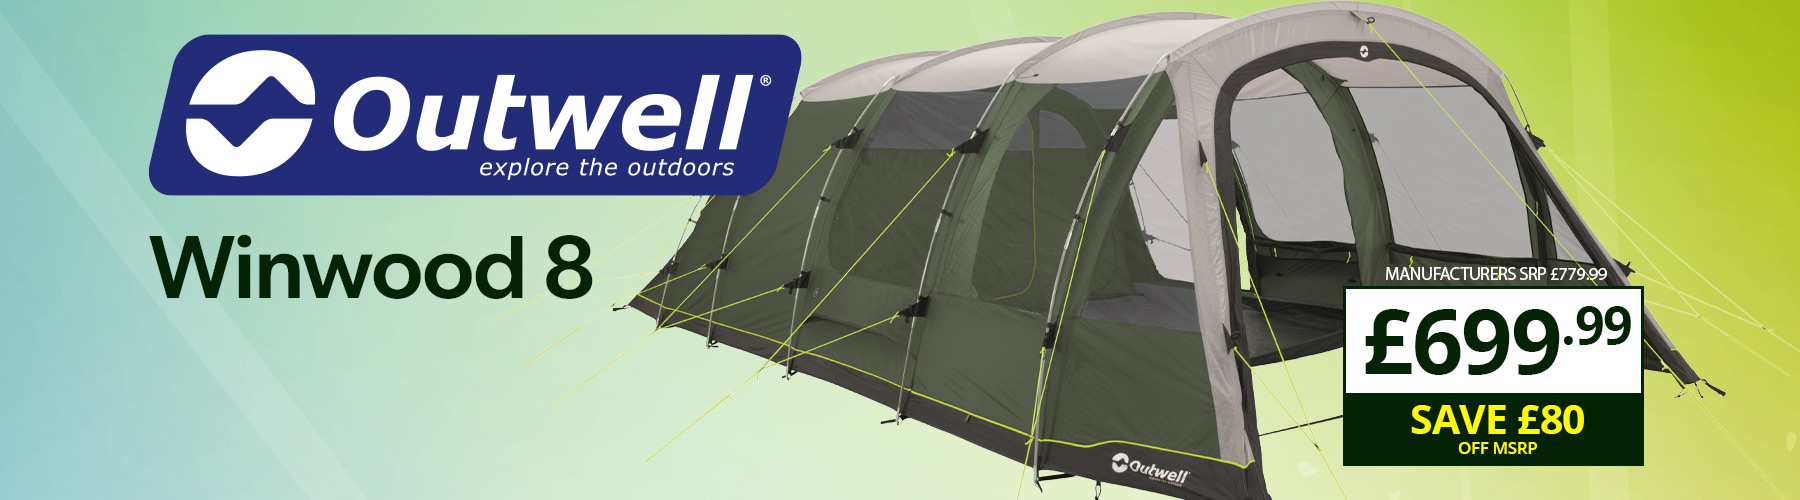 Outwell Winwood 8 Tent